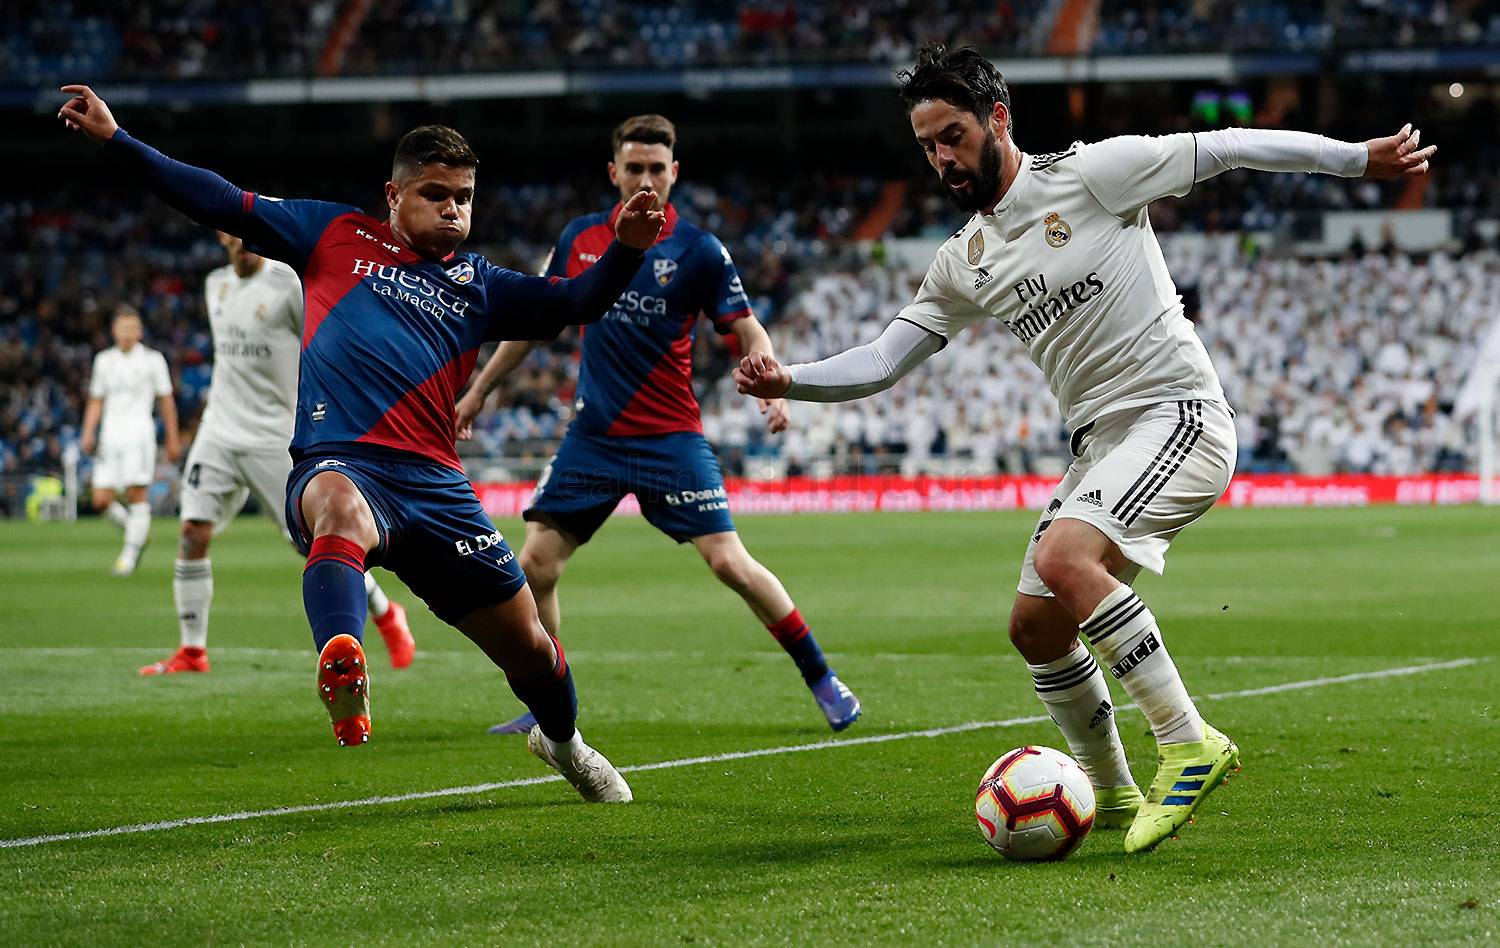 Real Madrid - Real Madrid - Huesca - 31-03-2019